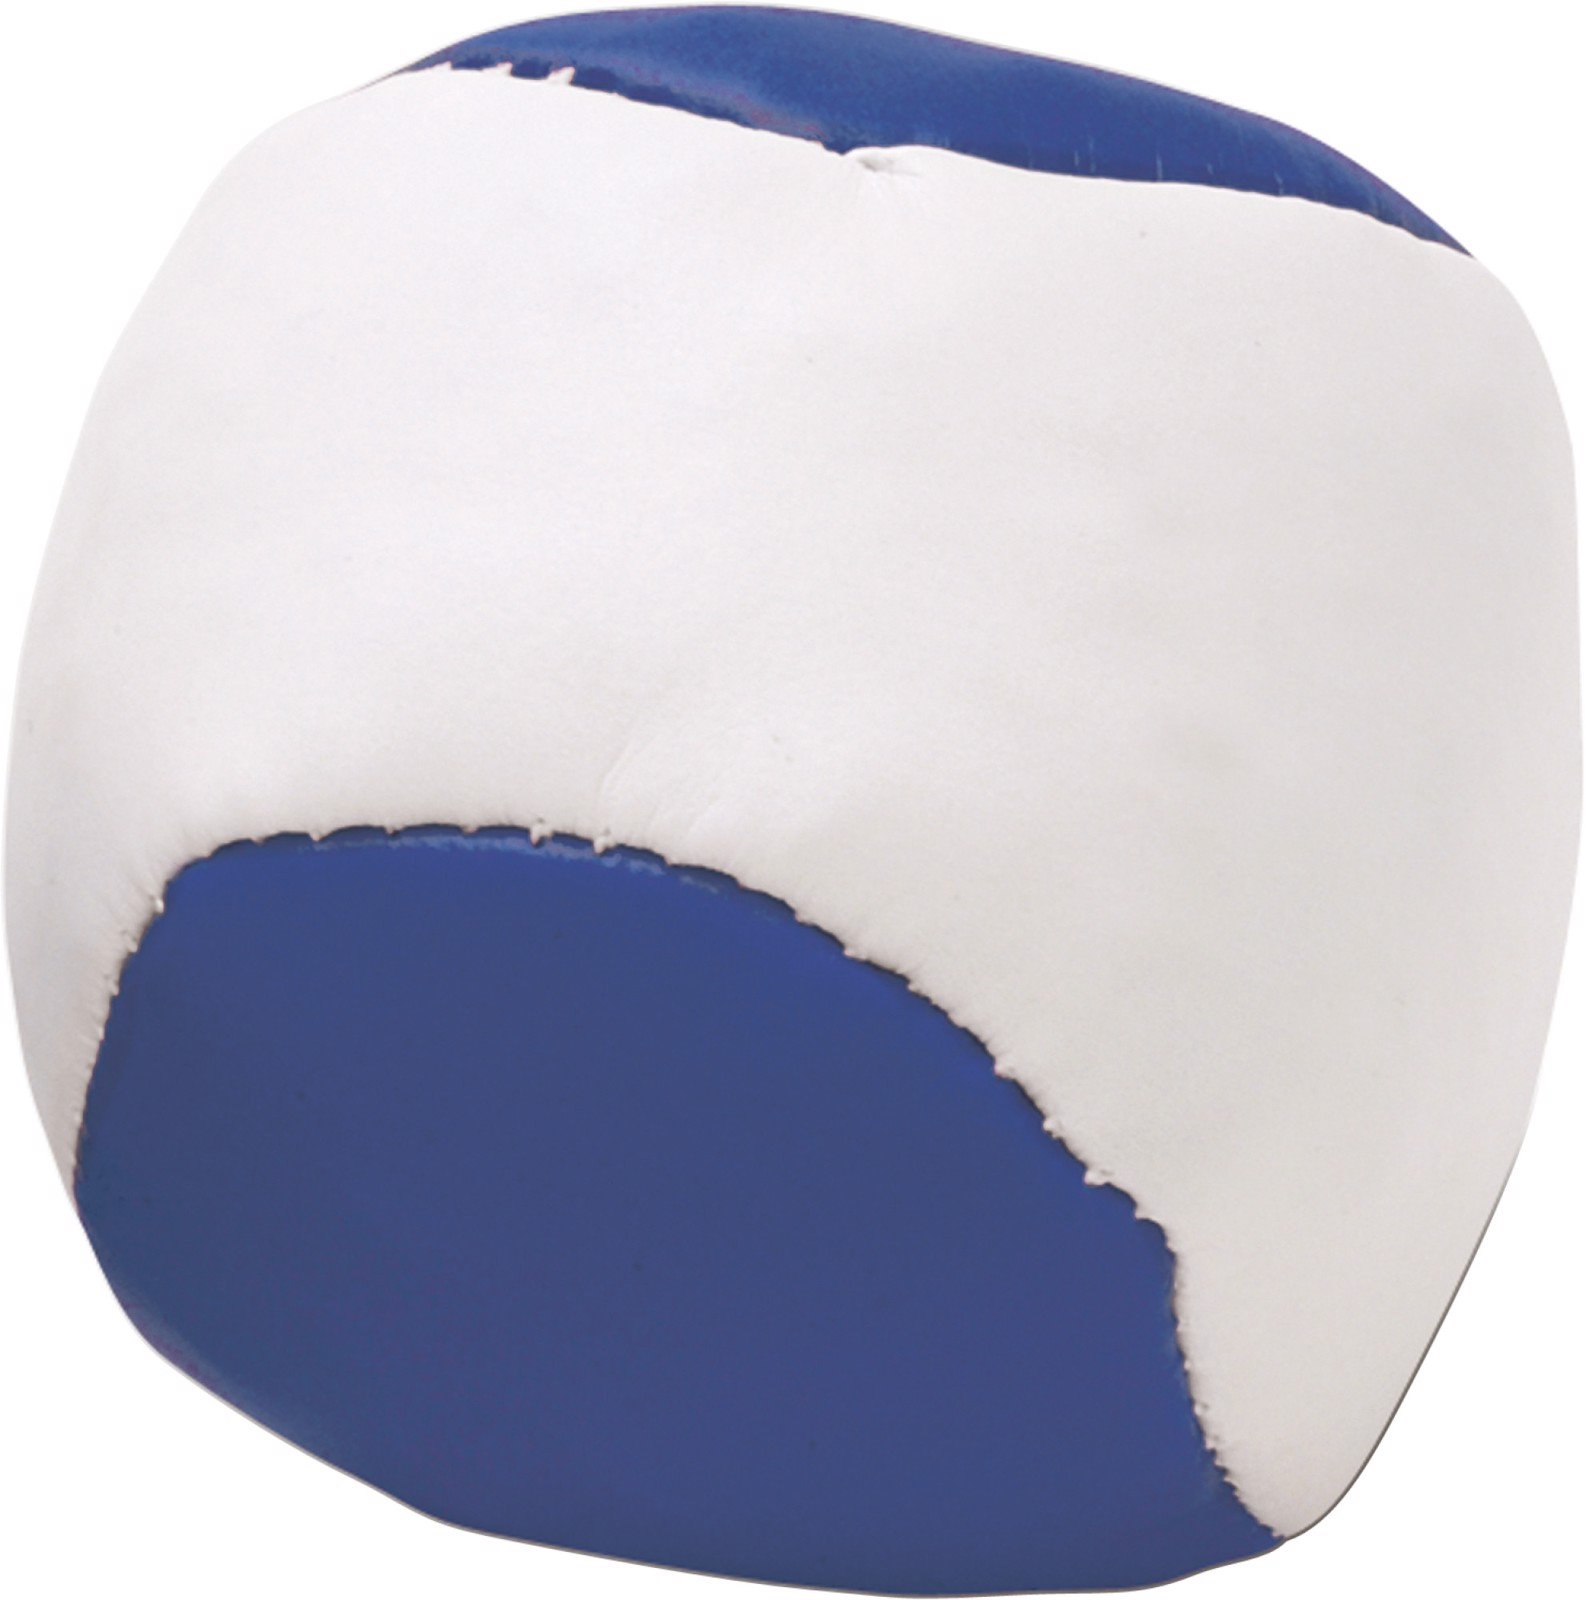 Imitation leather juggling ball - Blue